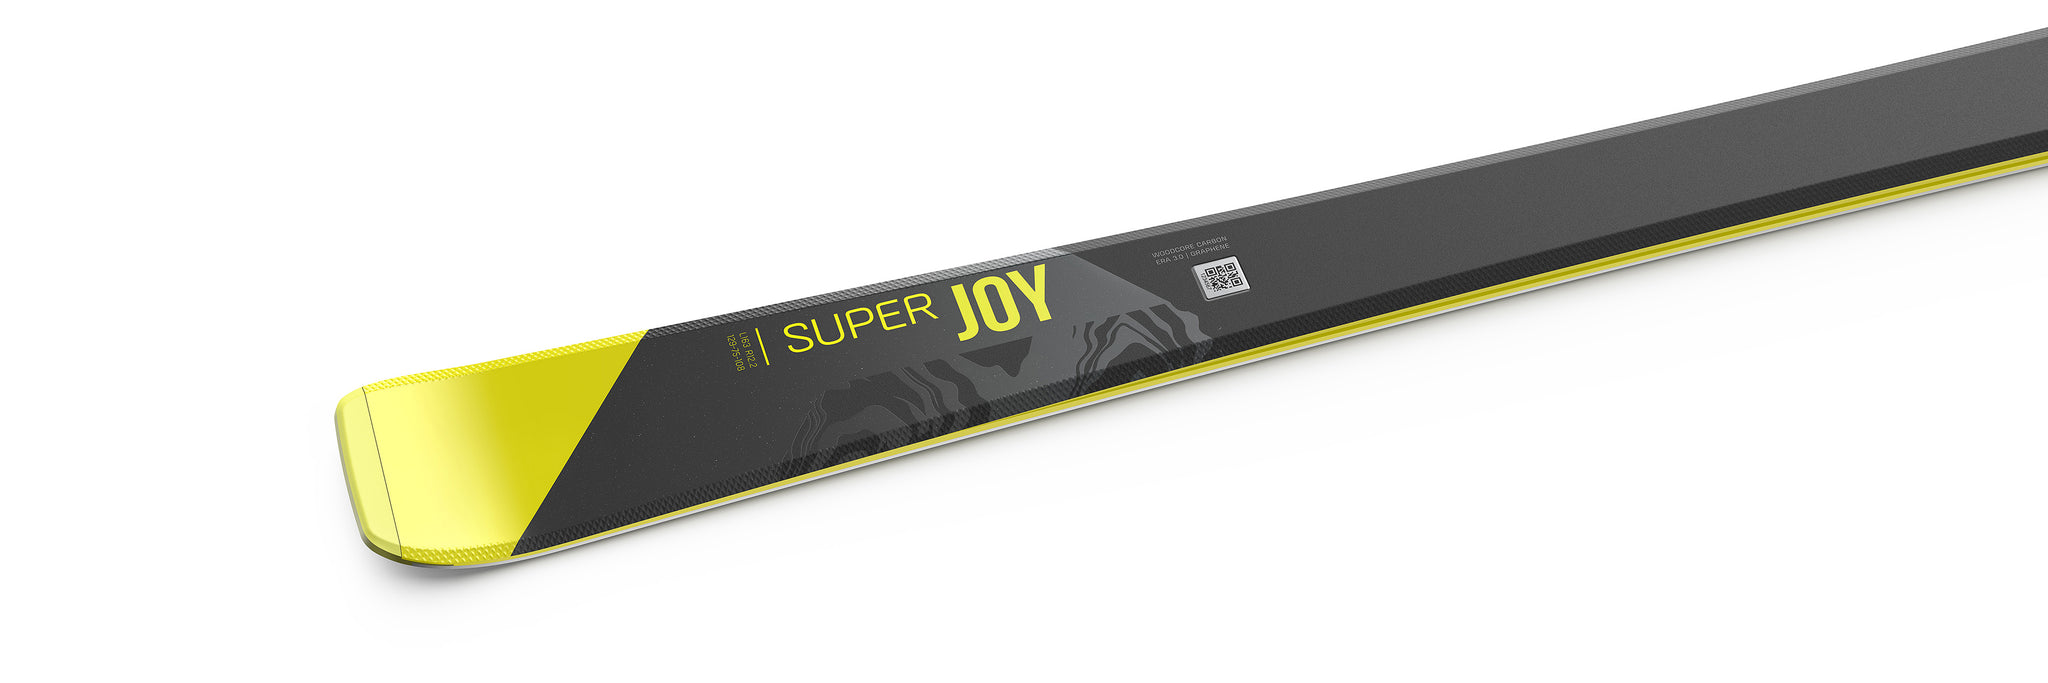 Head Super Joy Skis